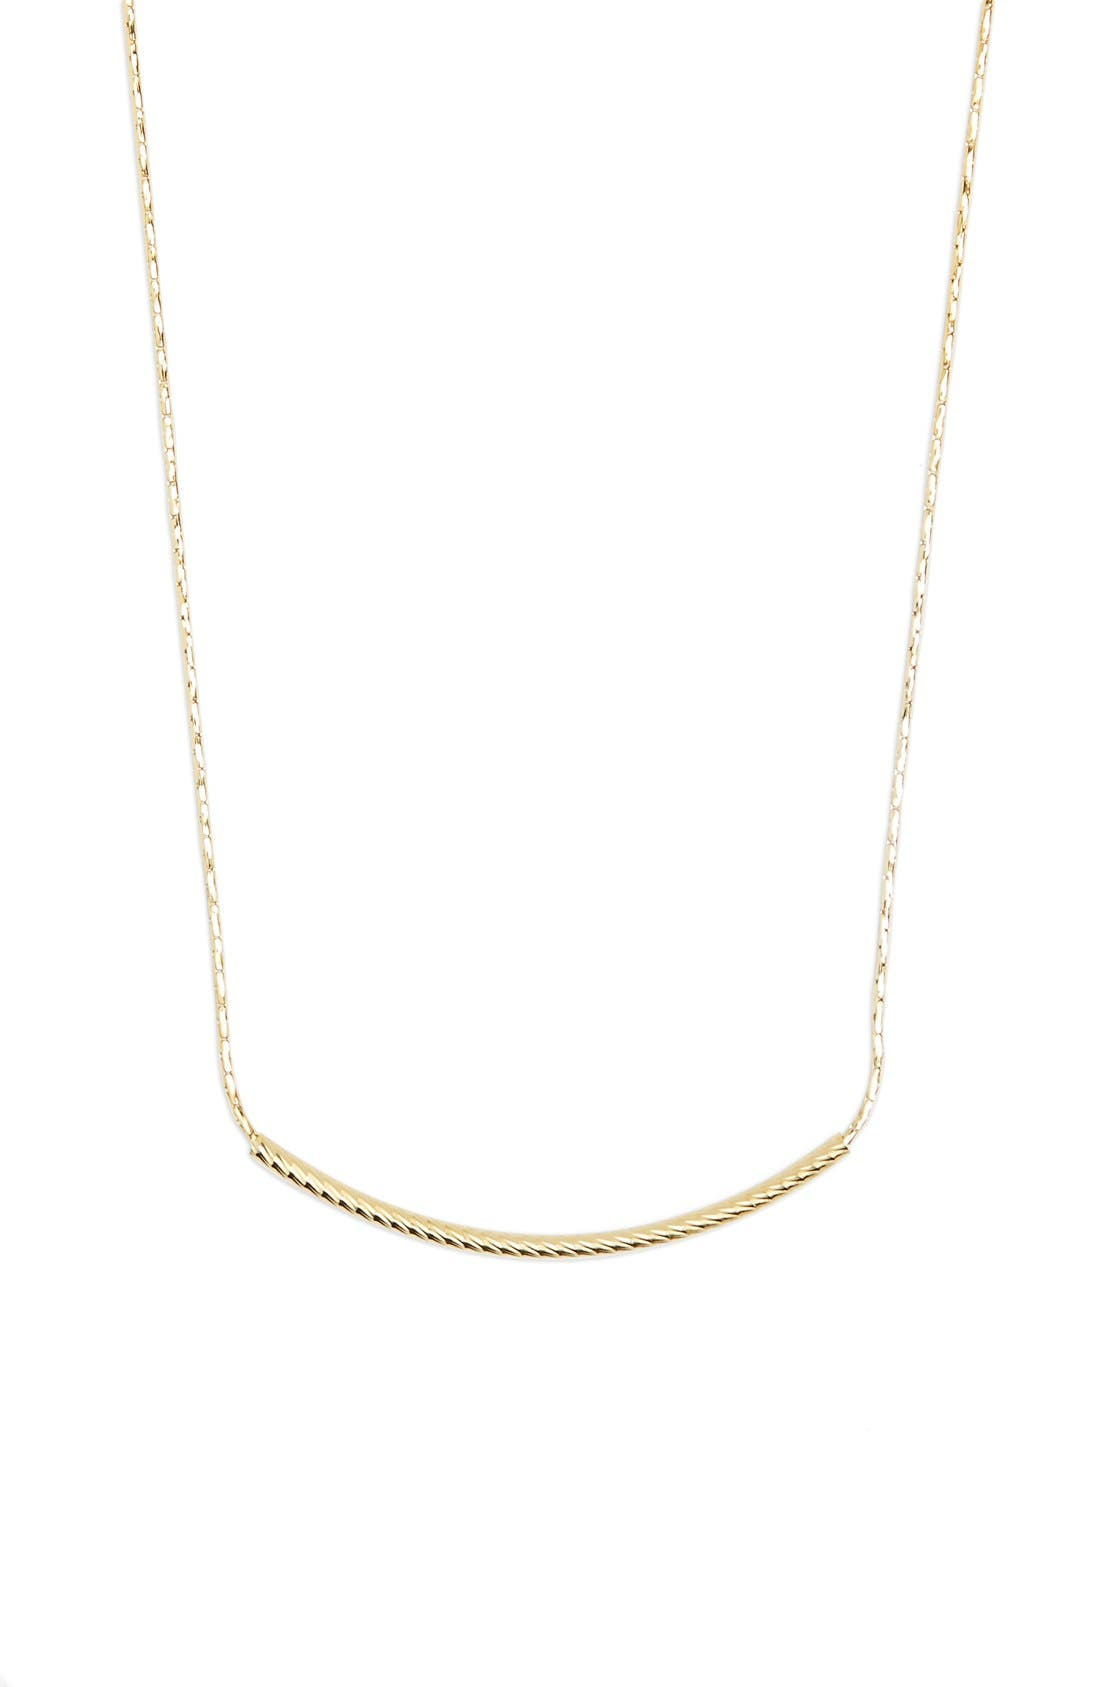 Main Image - Bony Levy 14k Gold Curved Bar Necklace (Nordstrom Exclusive)